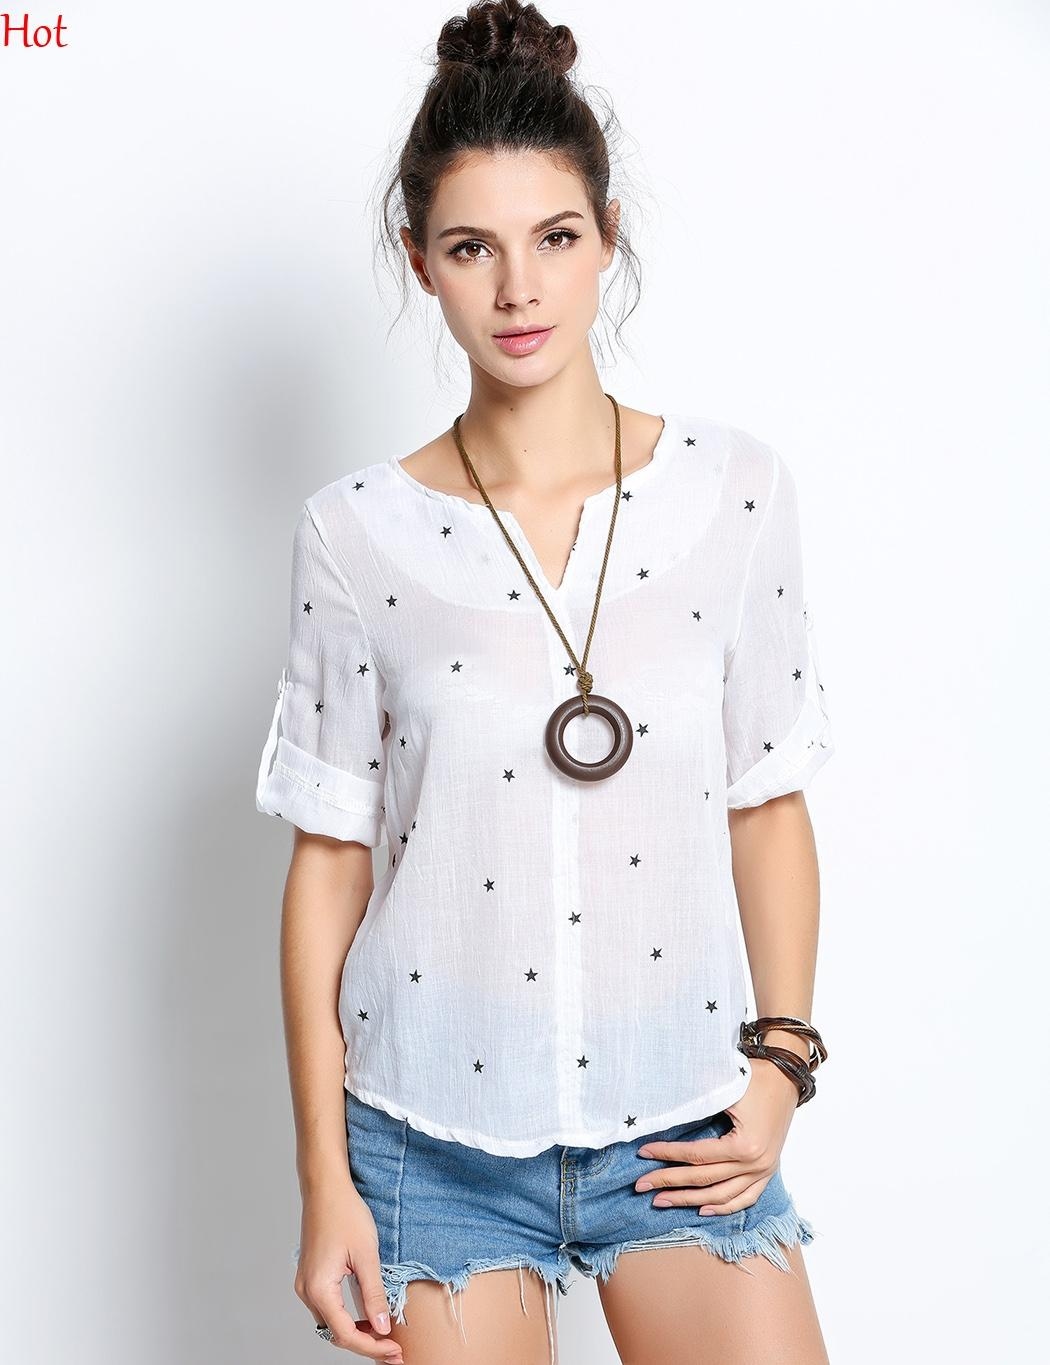 c5a1ba4bf36 2019 Sheer Chemisier Stars Print Tops Womens Tops Fashion 2017 Autumn Linen  Shirt Women Short Sleeve Blouse Korean Woman Clothes Roupas SV023067 From  U king ...